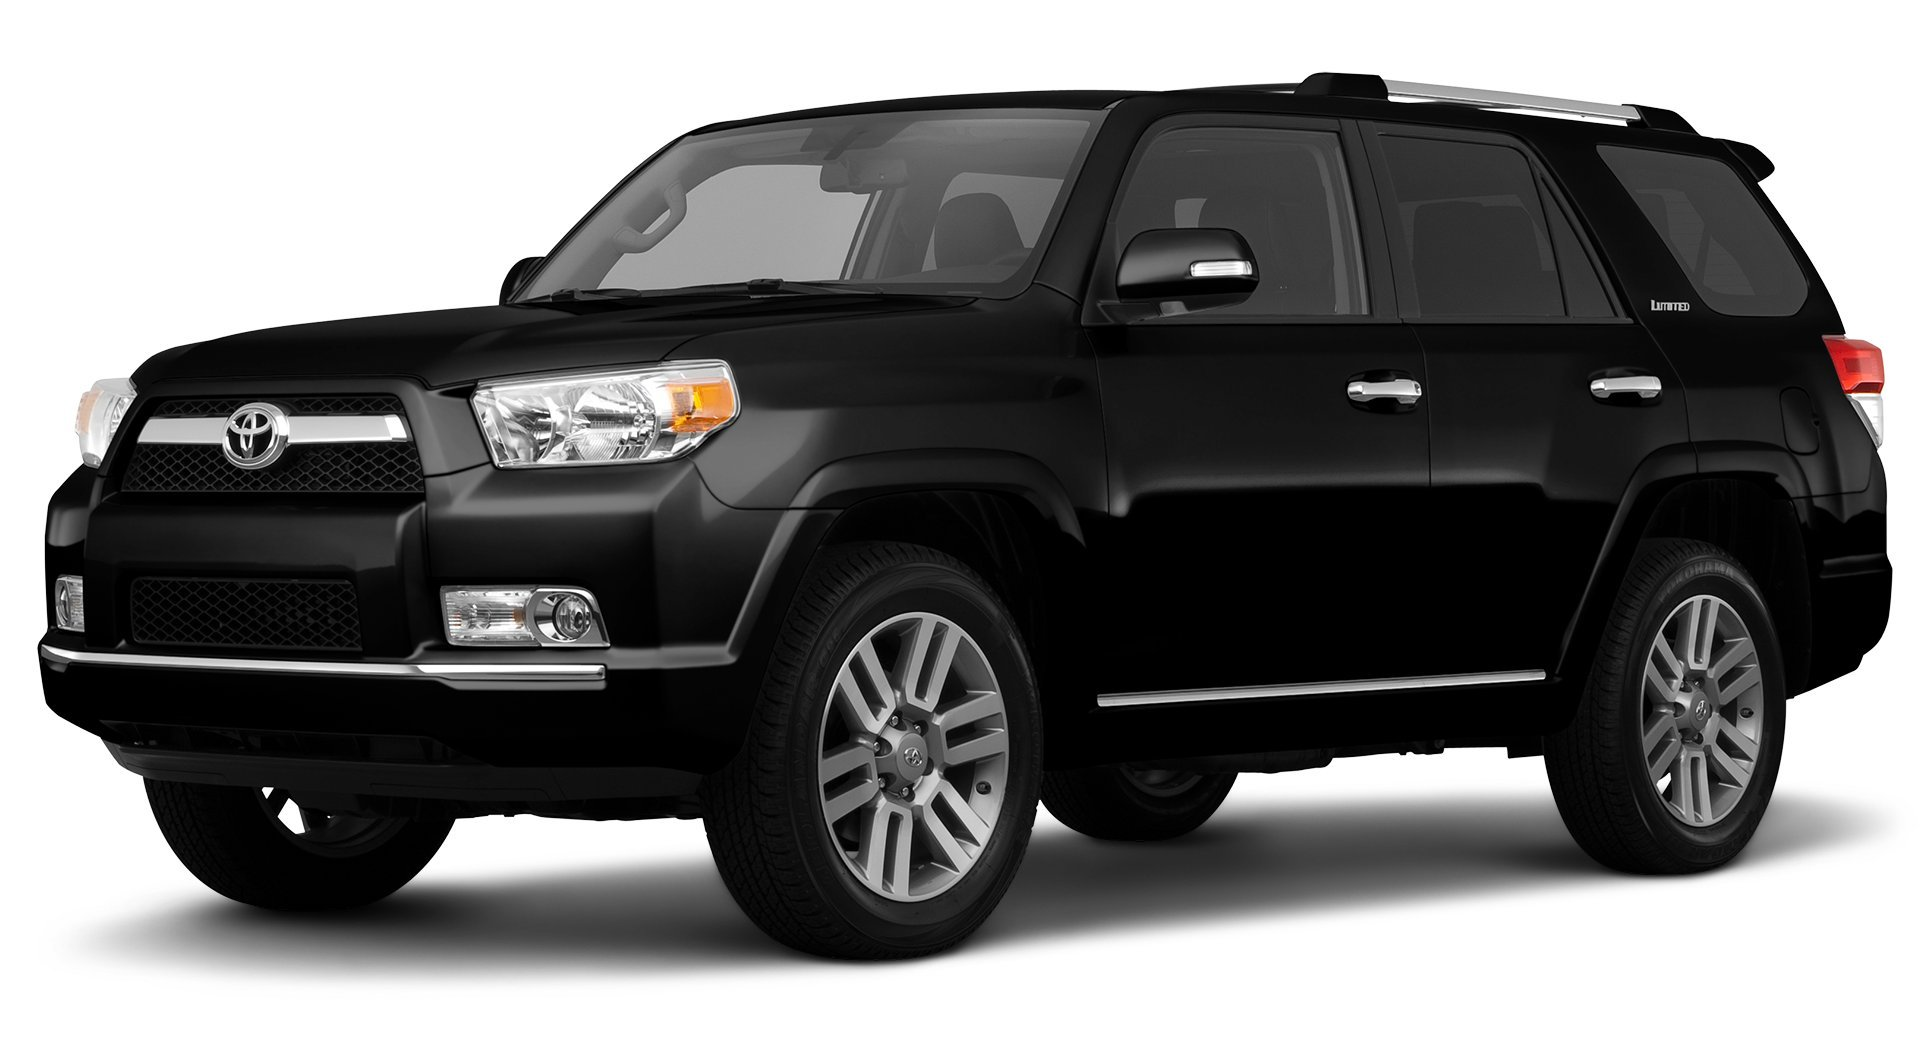 amazon com 2011 toyota 4runner reviews images and specs vehicles rh amazon com 2010 toyota 4runner manual repair 1999 Toyota 4Runner Lifted